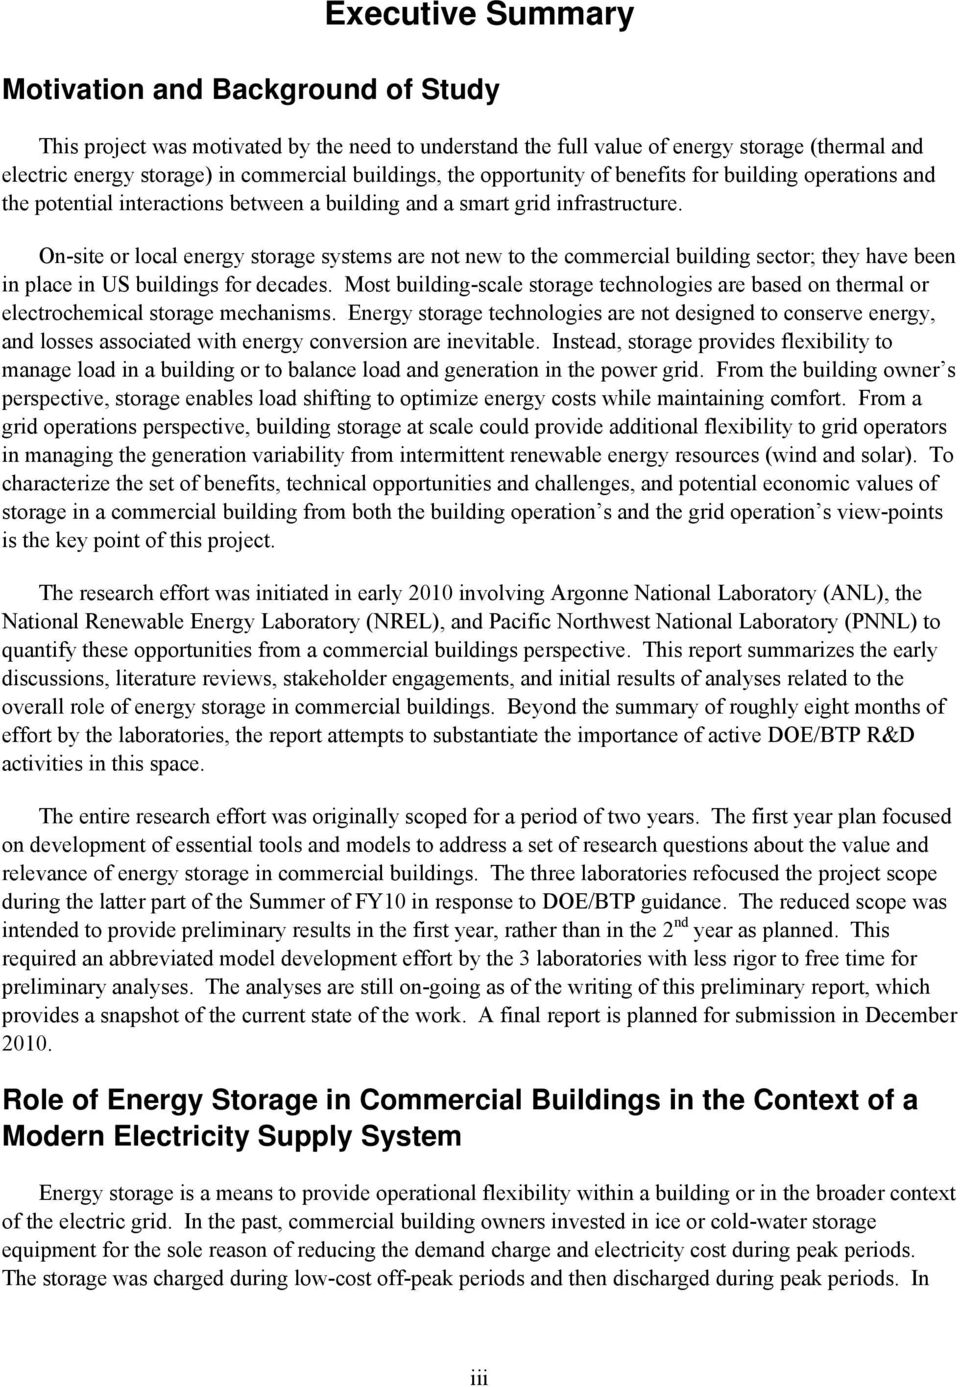 On-site or local energy storage systems are not new to the commercial building sector; they have been in place in US buildings for decades.